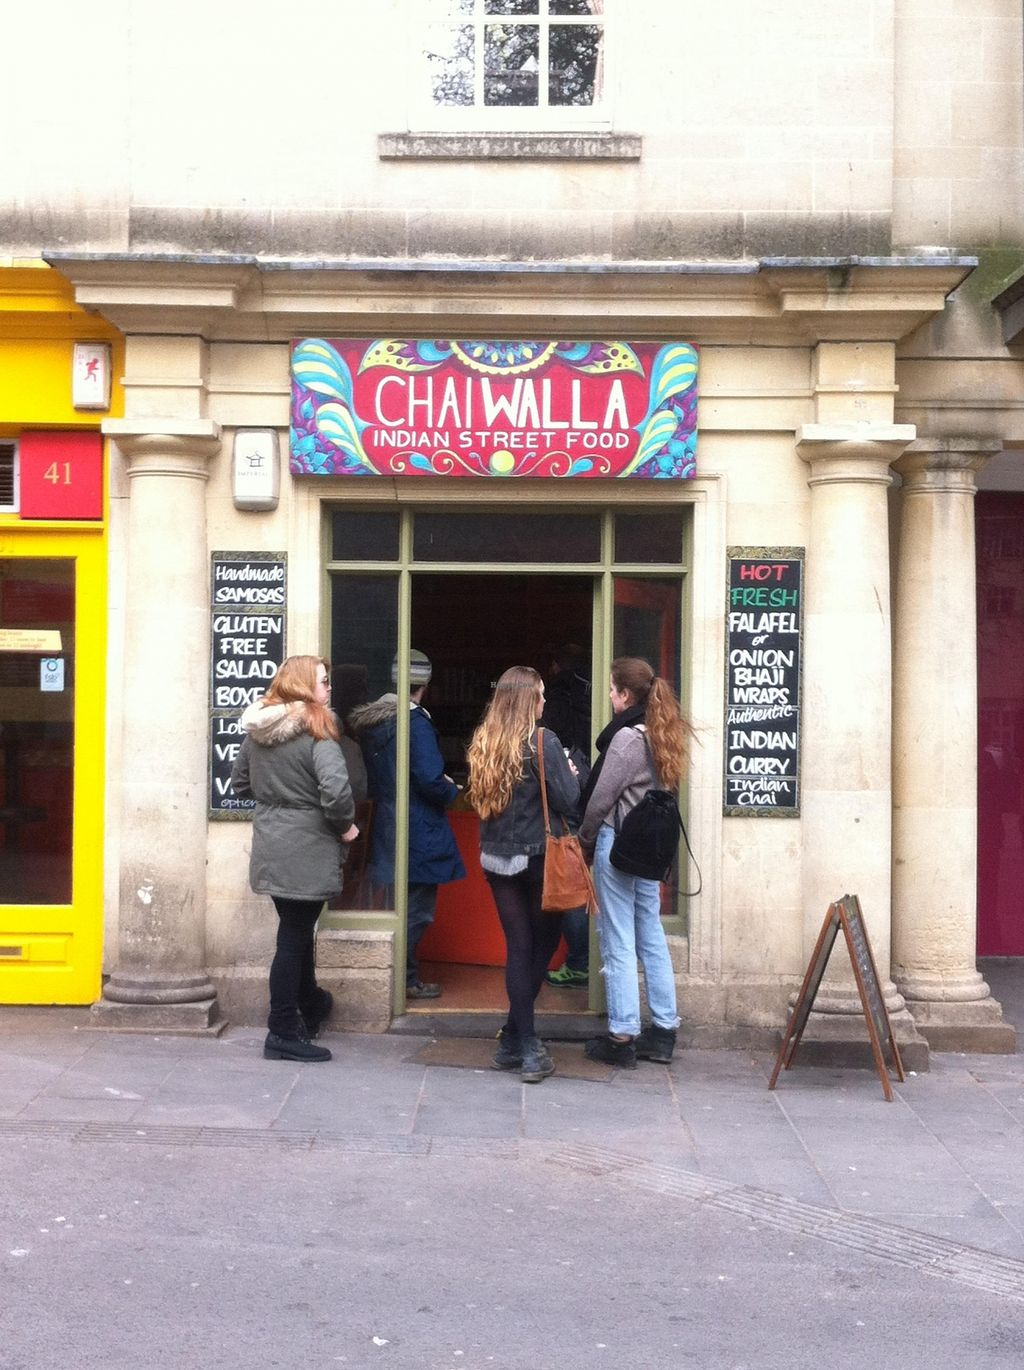 """Photo of Chai Walla  by <a href=""""/members/profile/AdamPope"""">AdamPope</a> <br/>Amazing Indian Street Food! <br/> April 1, 2016  - <a href='/contact/abuse/image/69540/142214'>Report</a>"""